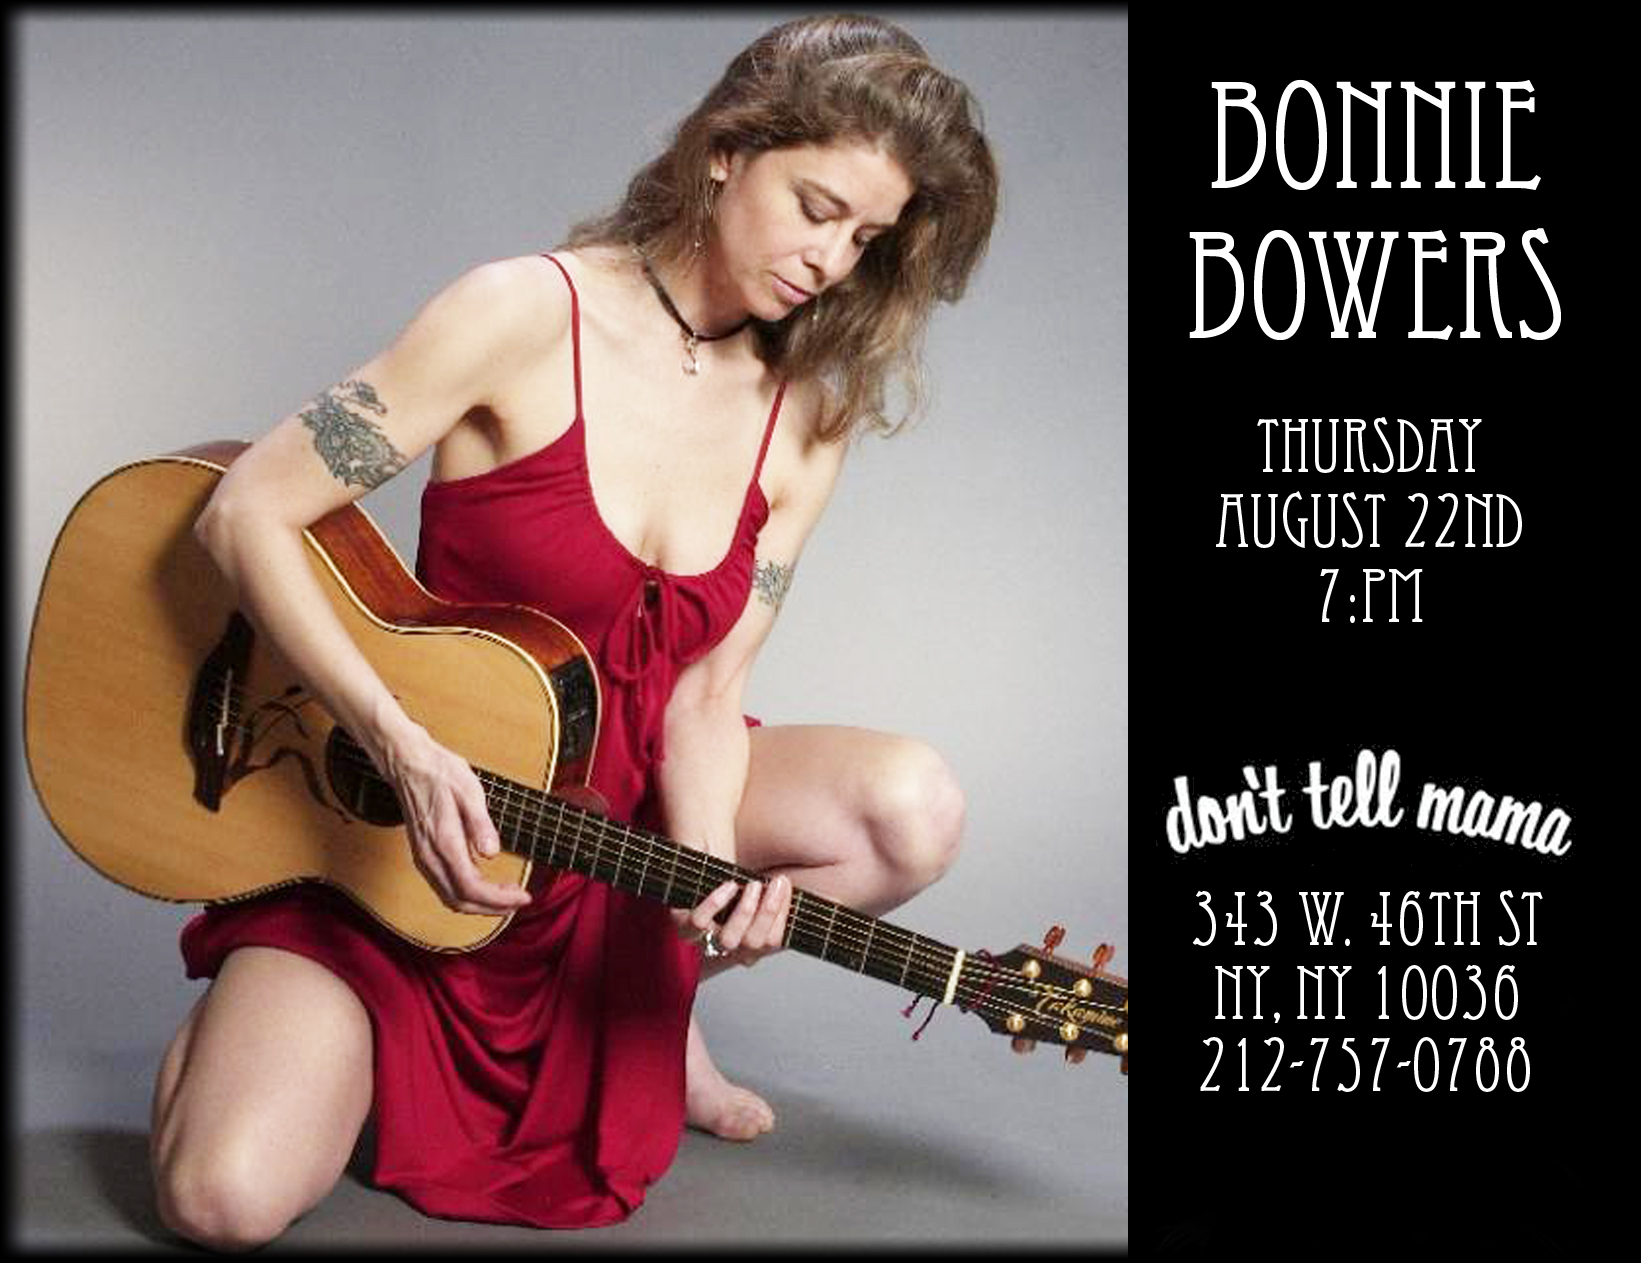 Bonnie Bowers live at Dont Tell Mama's New York City